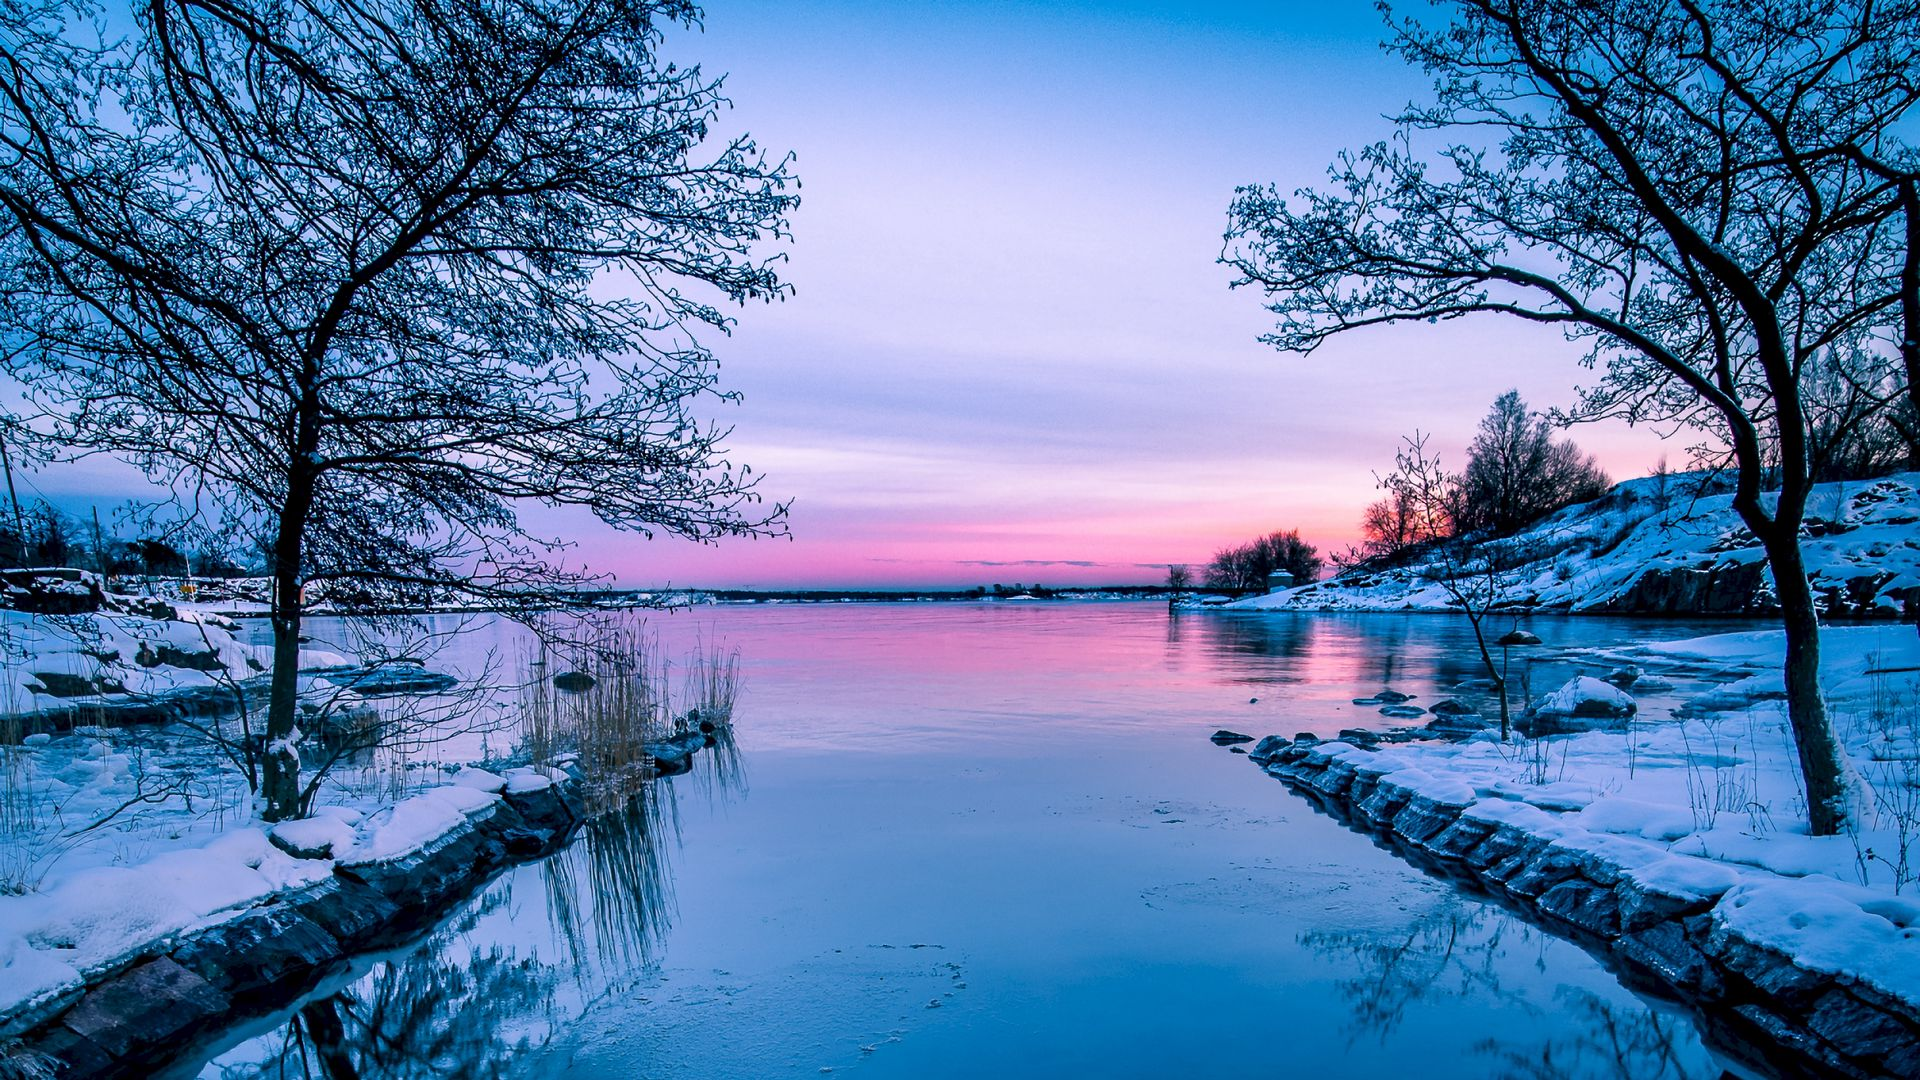 galaxy s7 wallpaper hd 1080p,natural landscape,nature,body of water,sky,winter